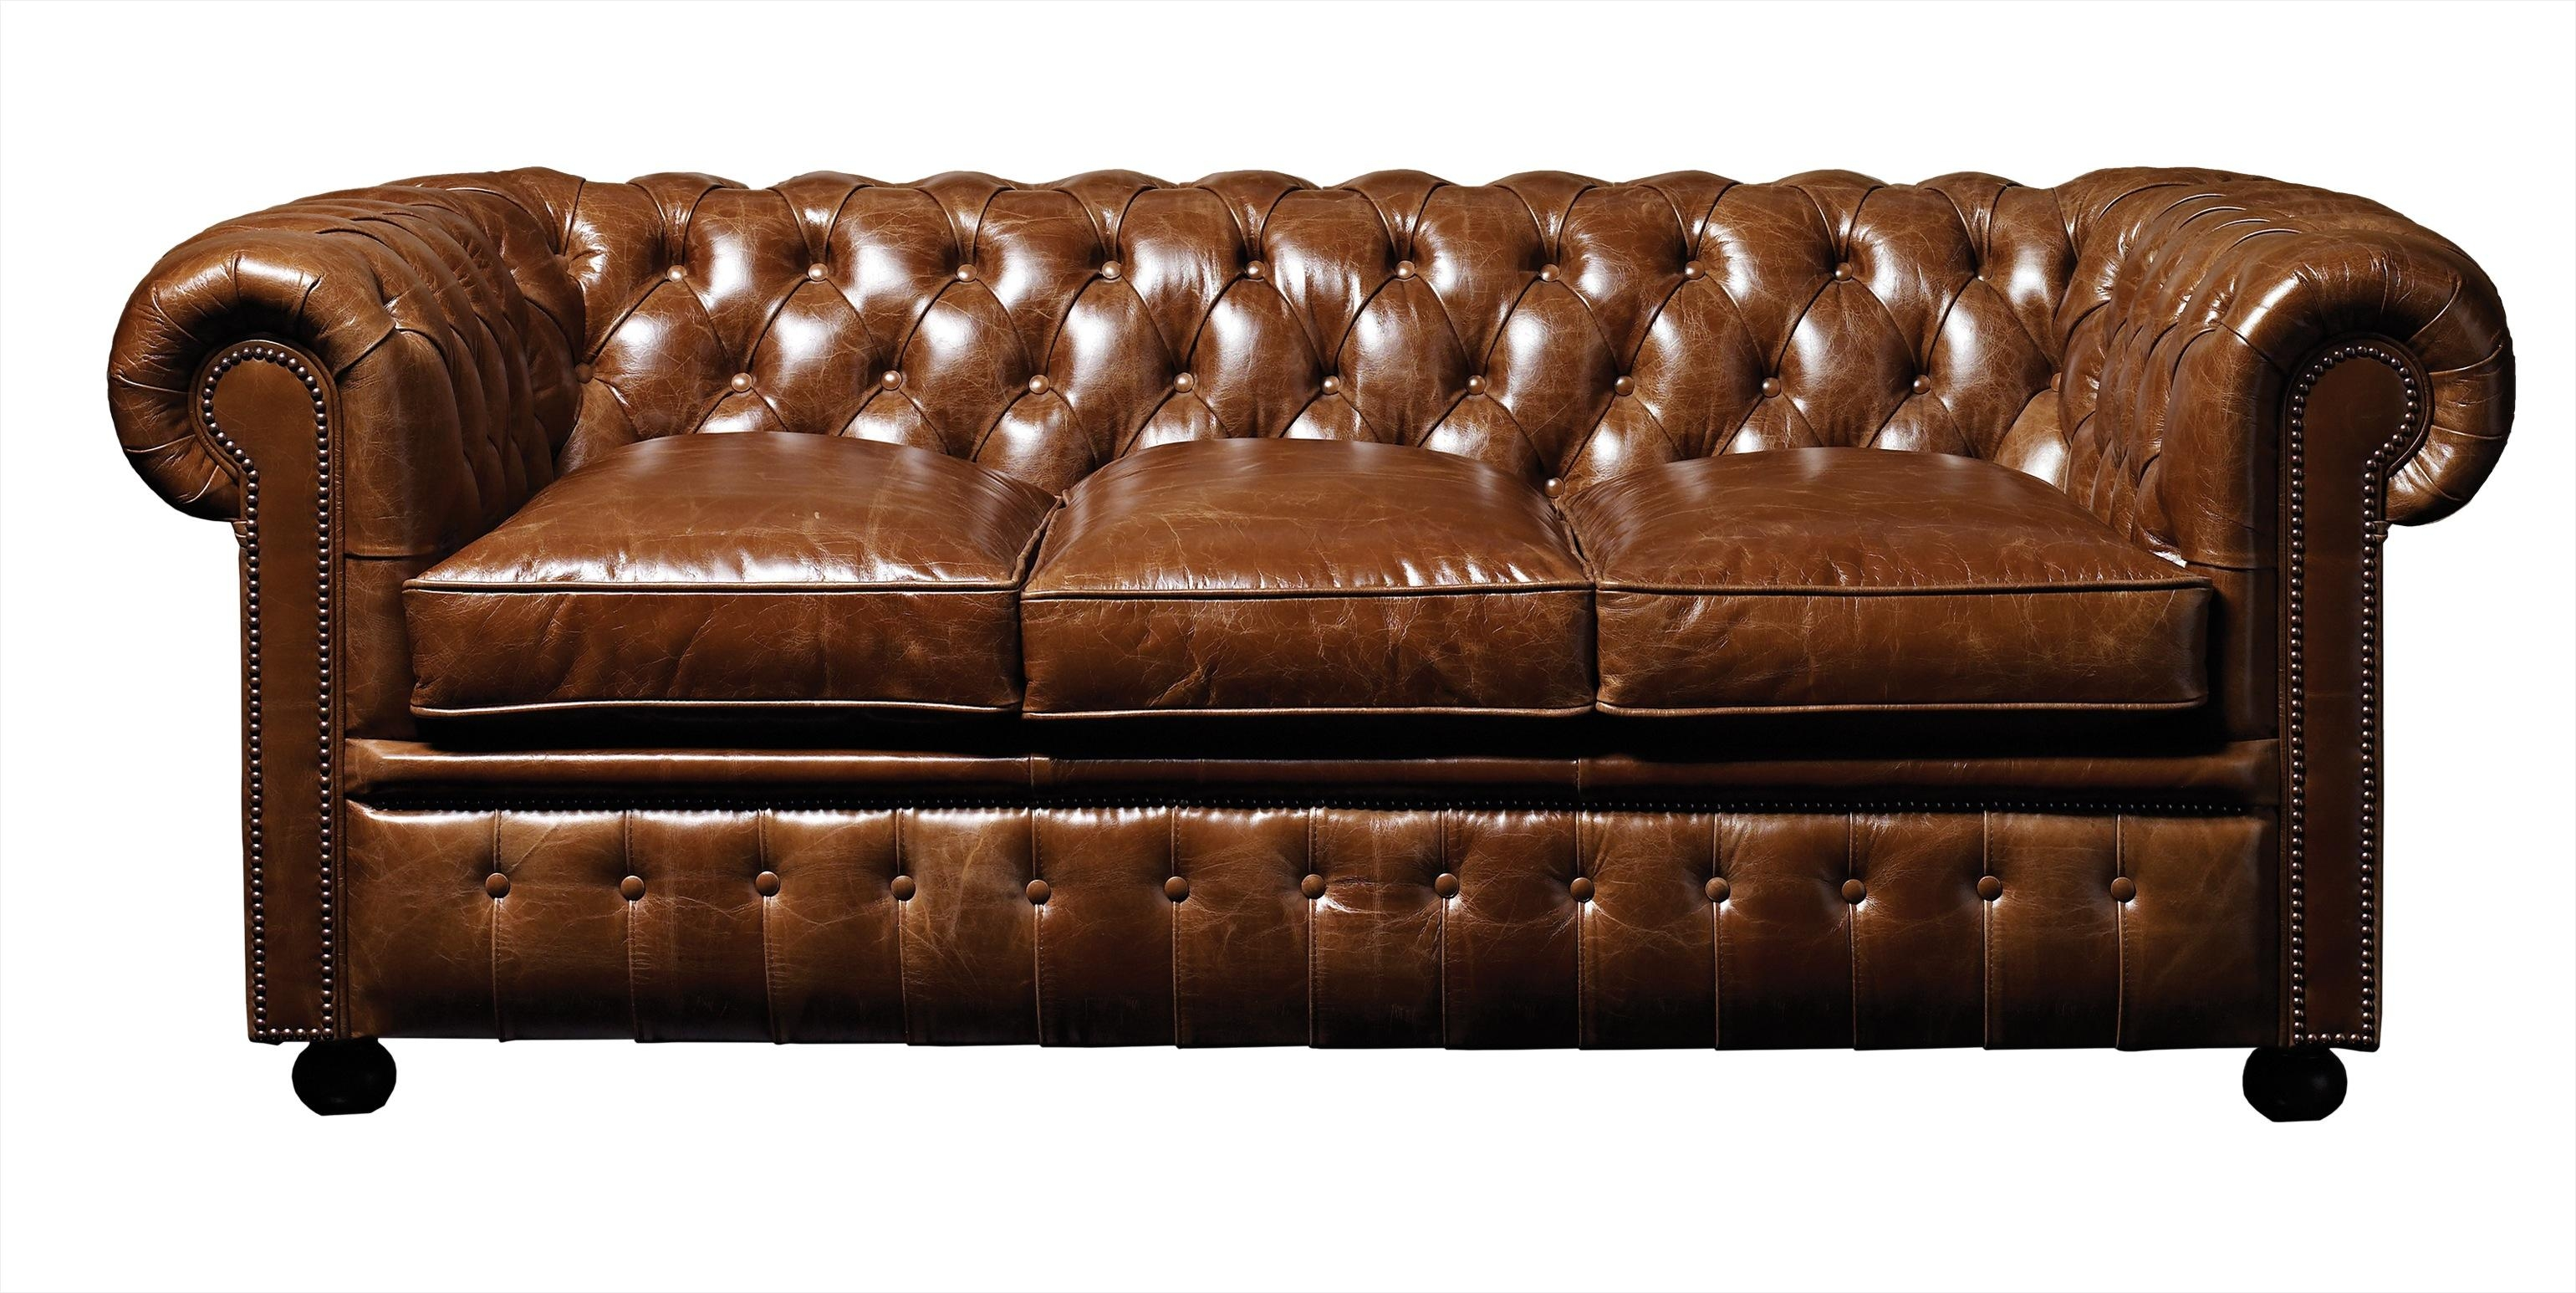 Sofas : Wonderful Loveseat Sofa Bed Linen Chesterfield Sofa Grey Inside Cheap Tufted Sofas (Image 19 of 23)